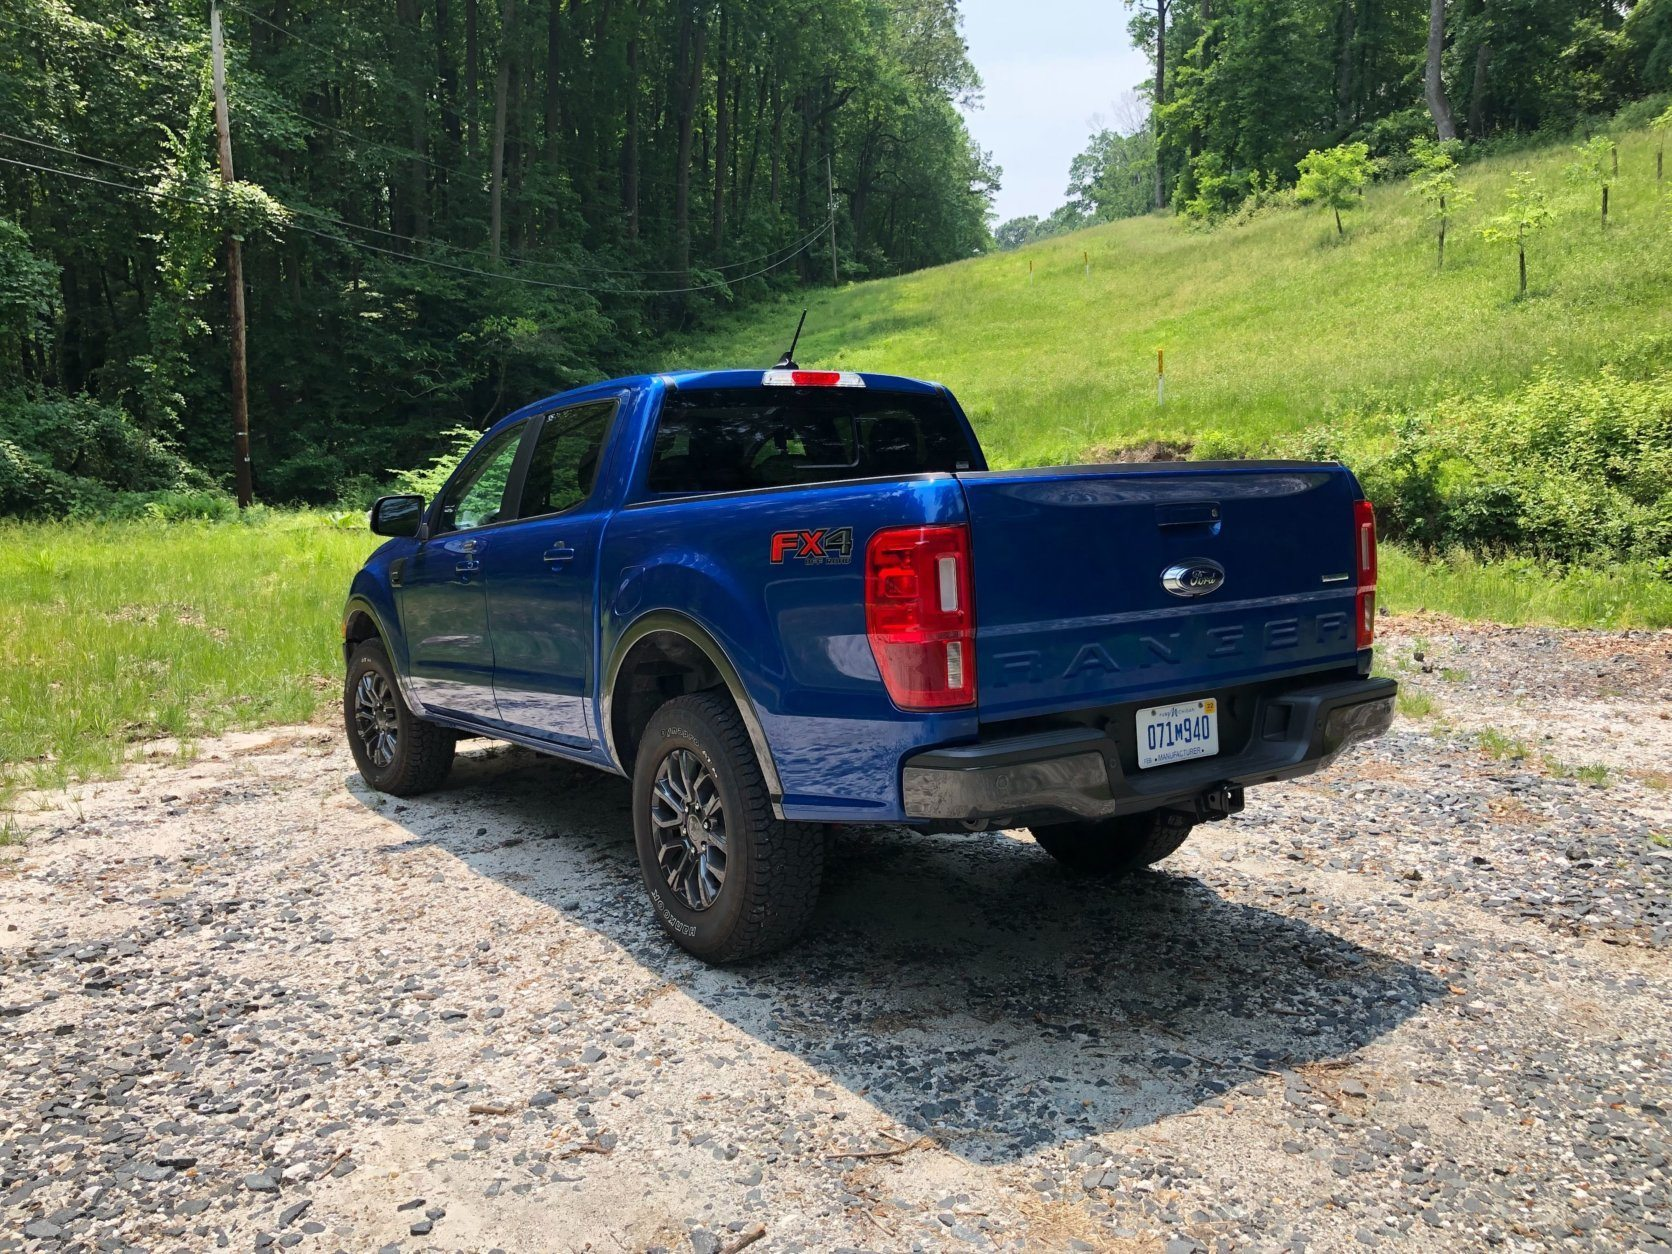 <p>This is a truck, so don't expect sport car handling. There is plenty of body lean. The Ranger navigates better than a larger truck around town with a smaller and less bulky stance. It's not as wide as an F-150 so it's easier to fit in smaller spaces and park.</p>